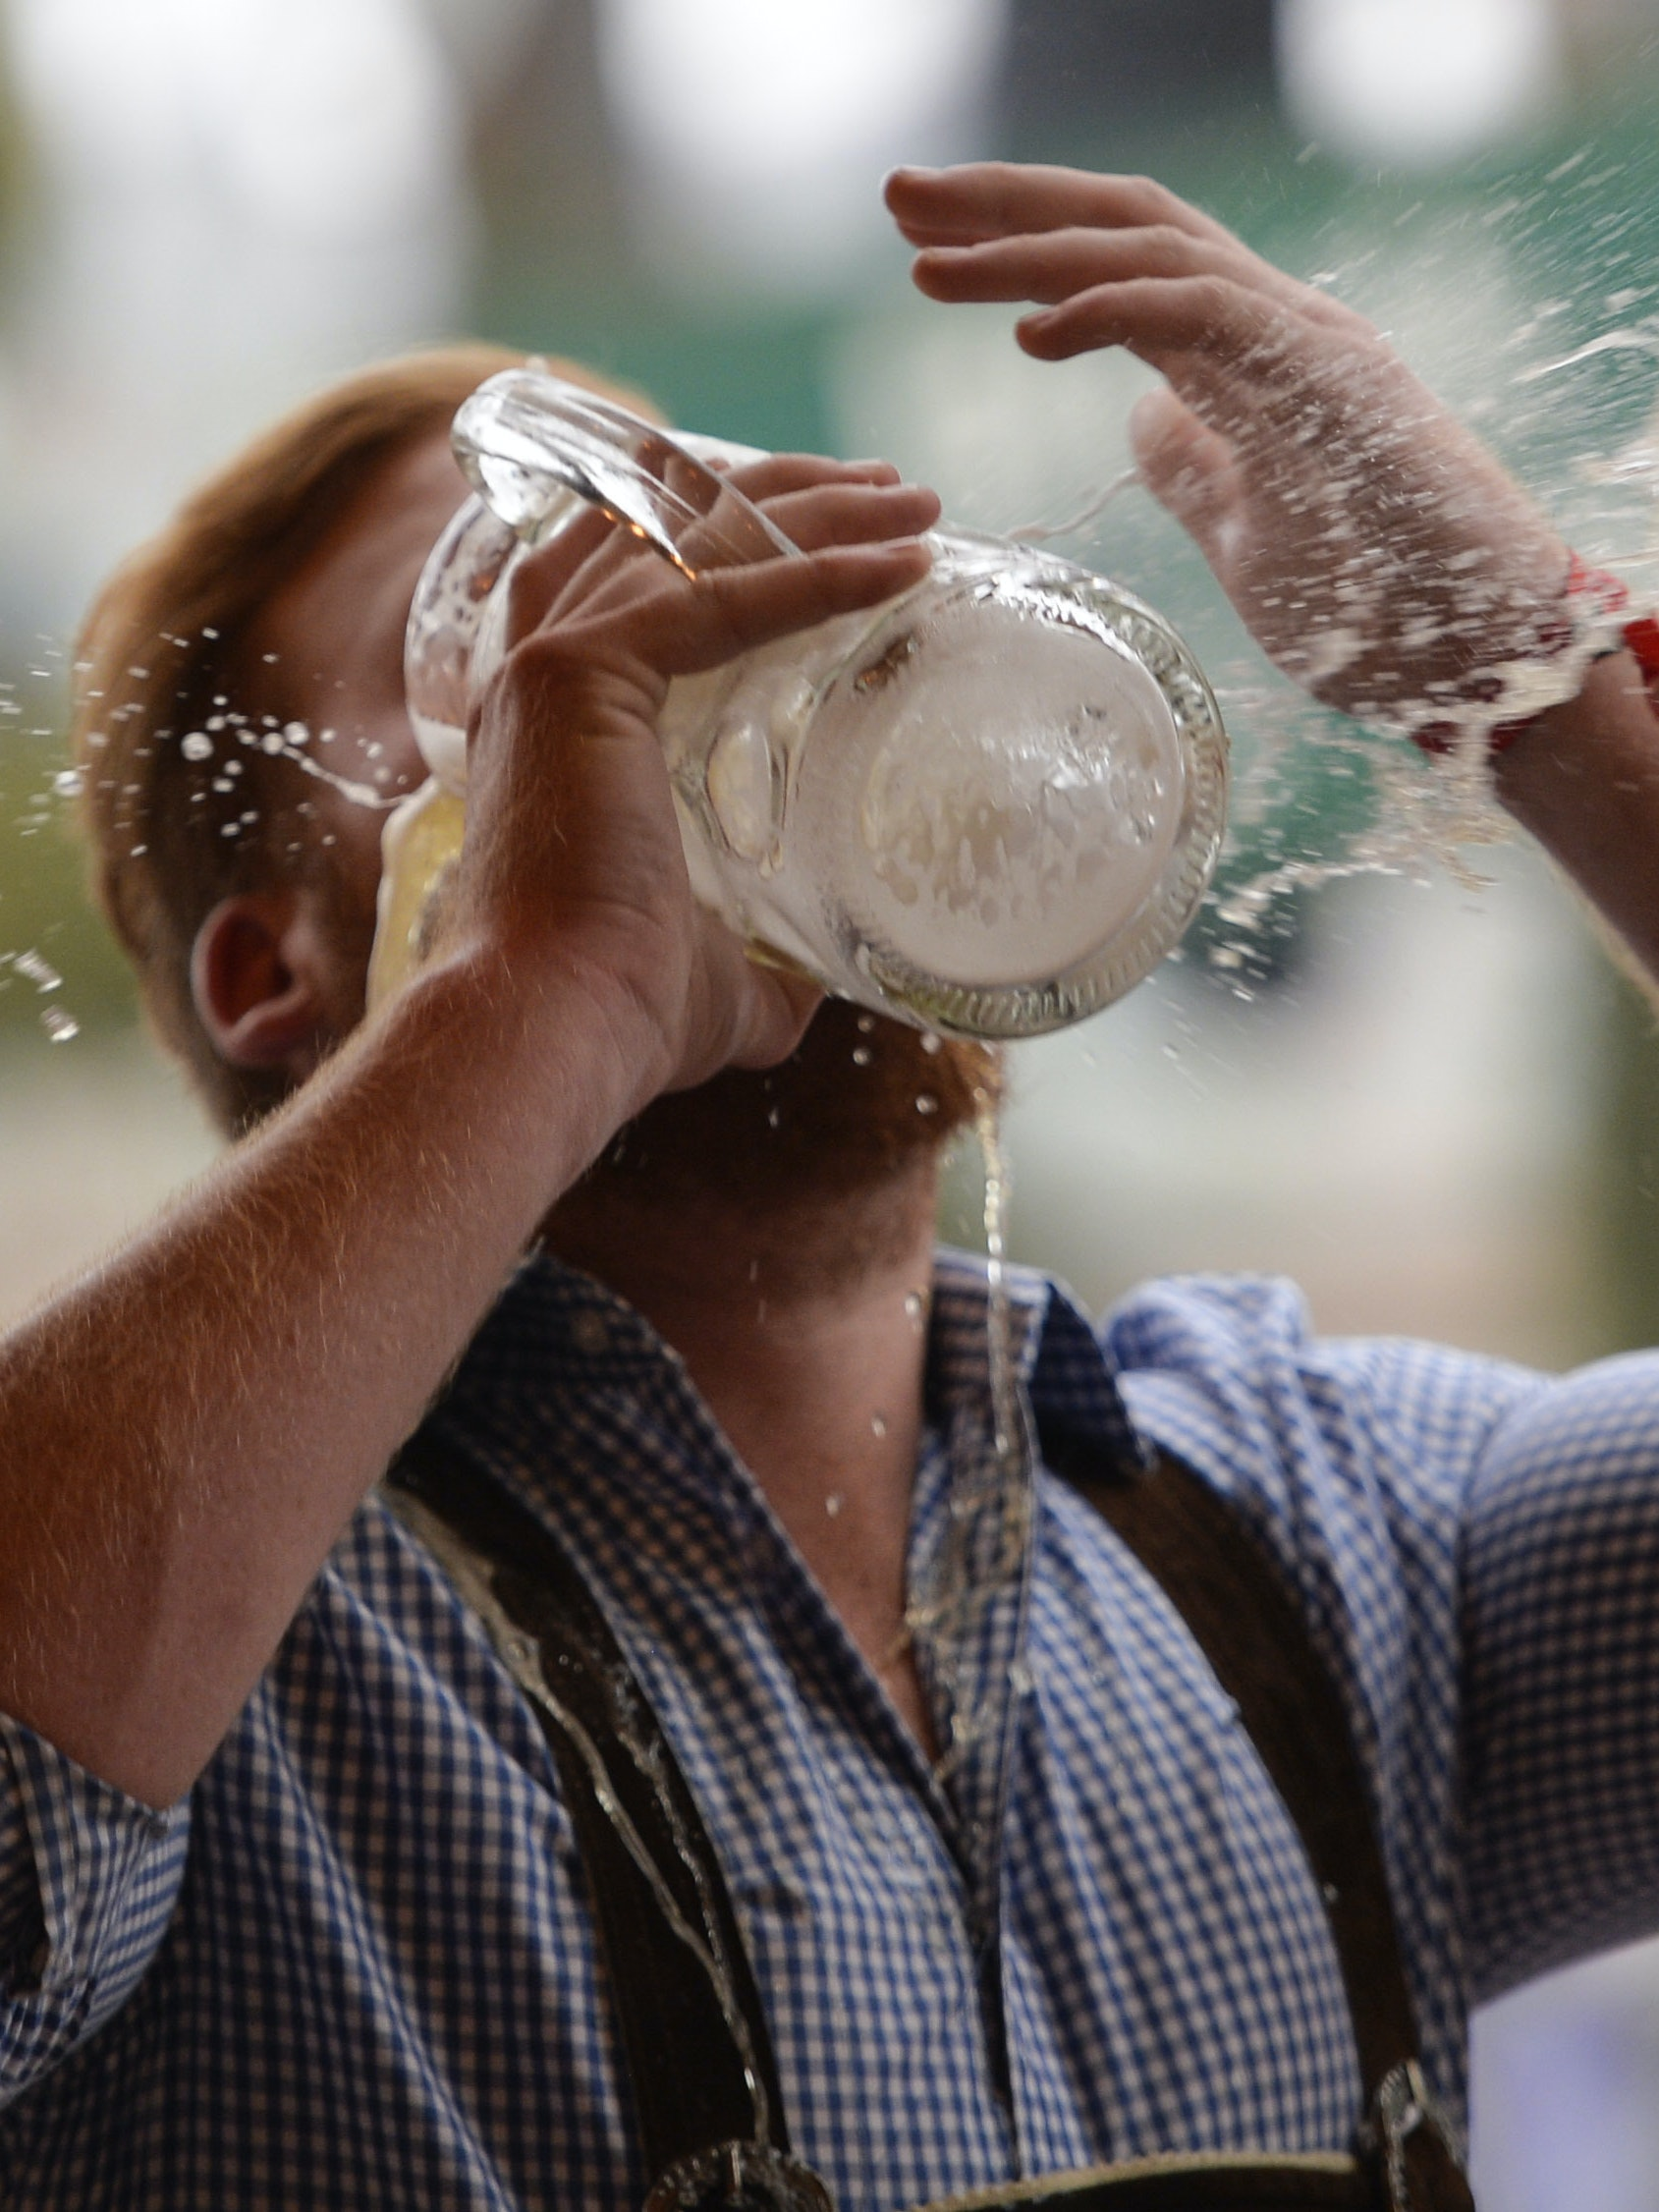 MUNICH, GERMANY - SEPTEMBER 19: A reveller spills beer as he tries to empty his stein in one sitting at the Hofbraeu tent on the opening day of the 2015 Oktoberfest on September 19, 2015 in Munich, Germany. The 182nd Oktoberfest will be open to the public from September 19 through October 4 and will draw millions of visitors from across the globe in the world's largest beer fest. (Photo by Philipp Guelland/Getty Images)